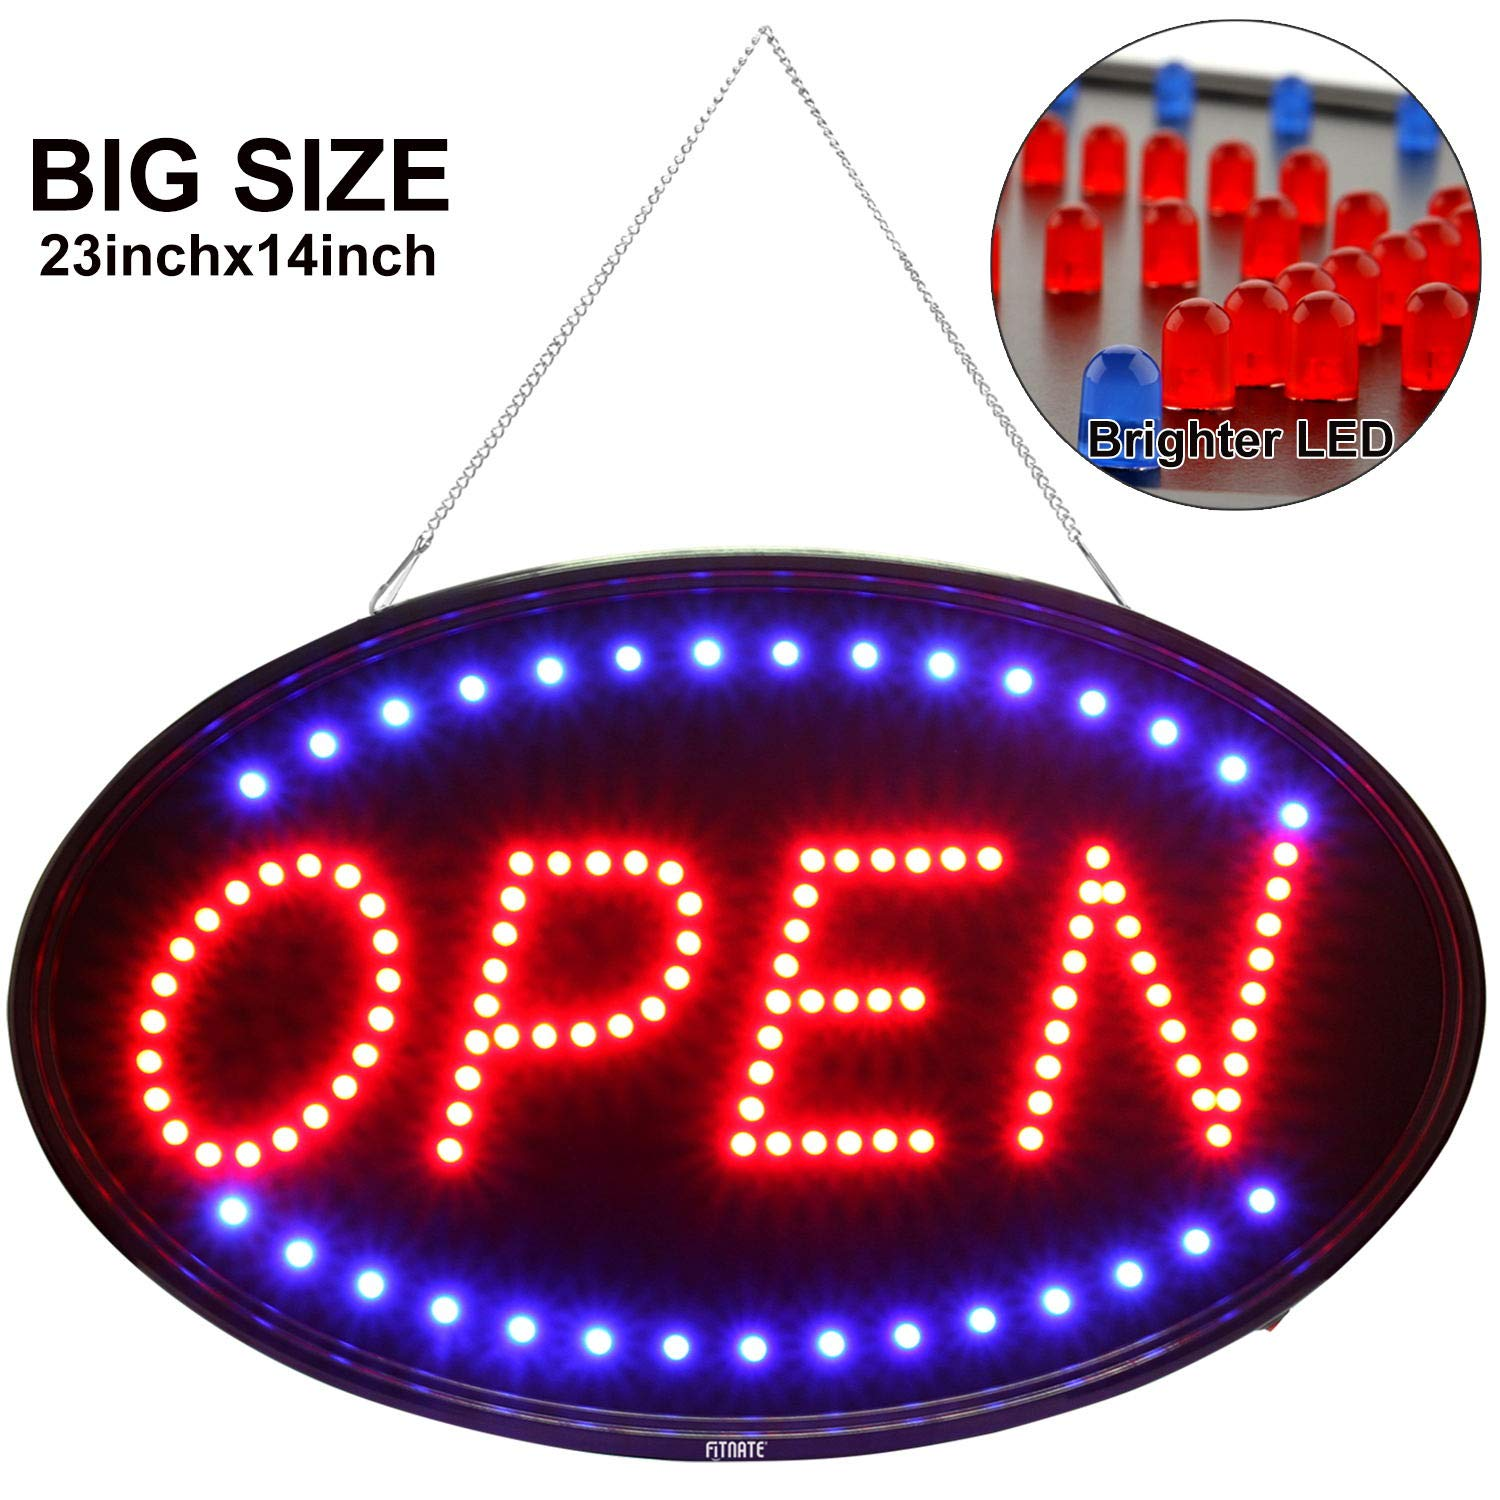 Larger LED Open Sign, 23x14 inches Brighter&Larger Advertising Board Electric Lighted Display -UL-Flashing or Steady Mode- Lighting Up for Holiday, Business, Window, Bar, Hotel, with Open Closed Sign by FITNATE